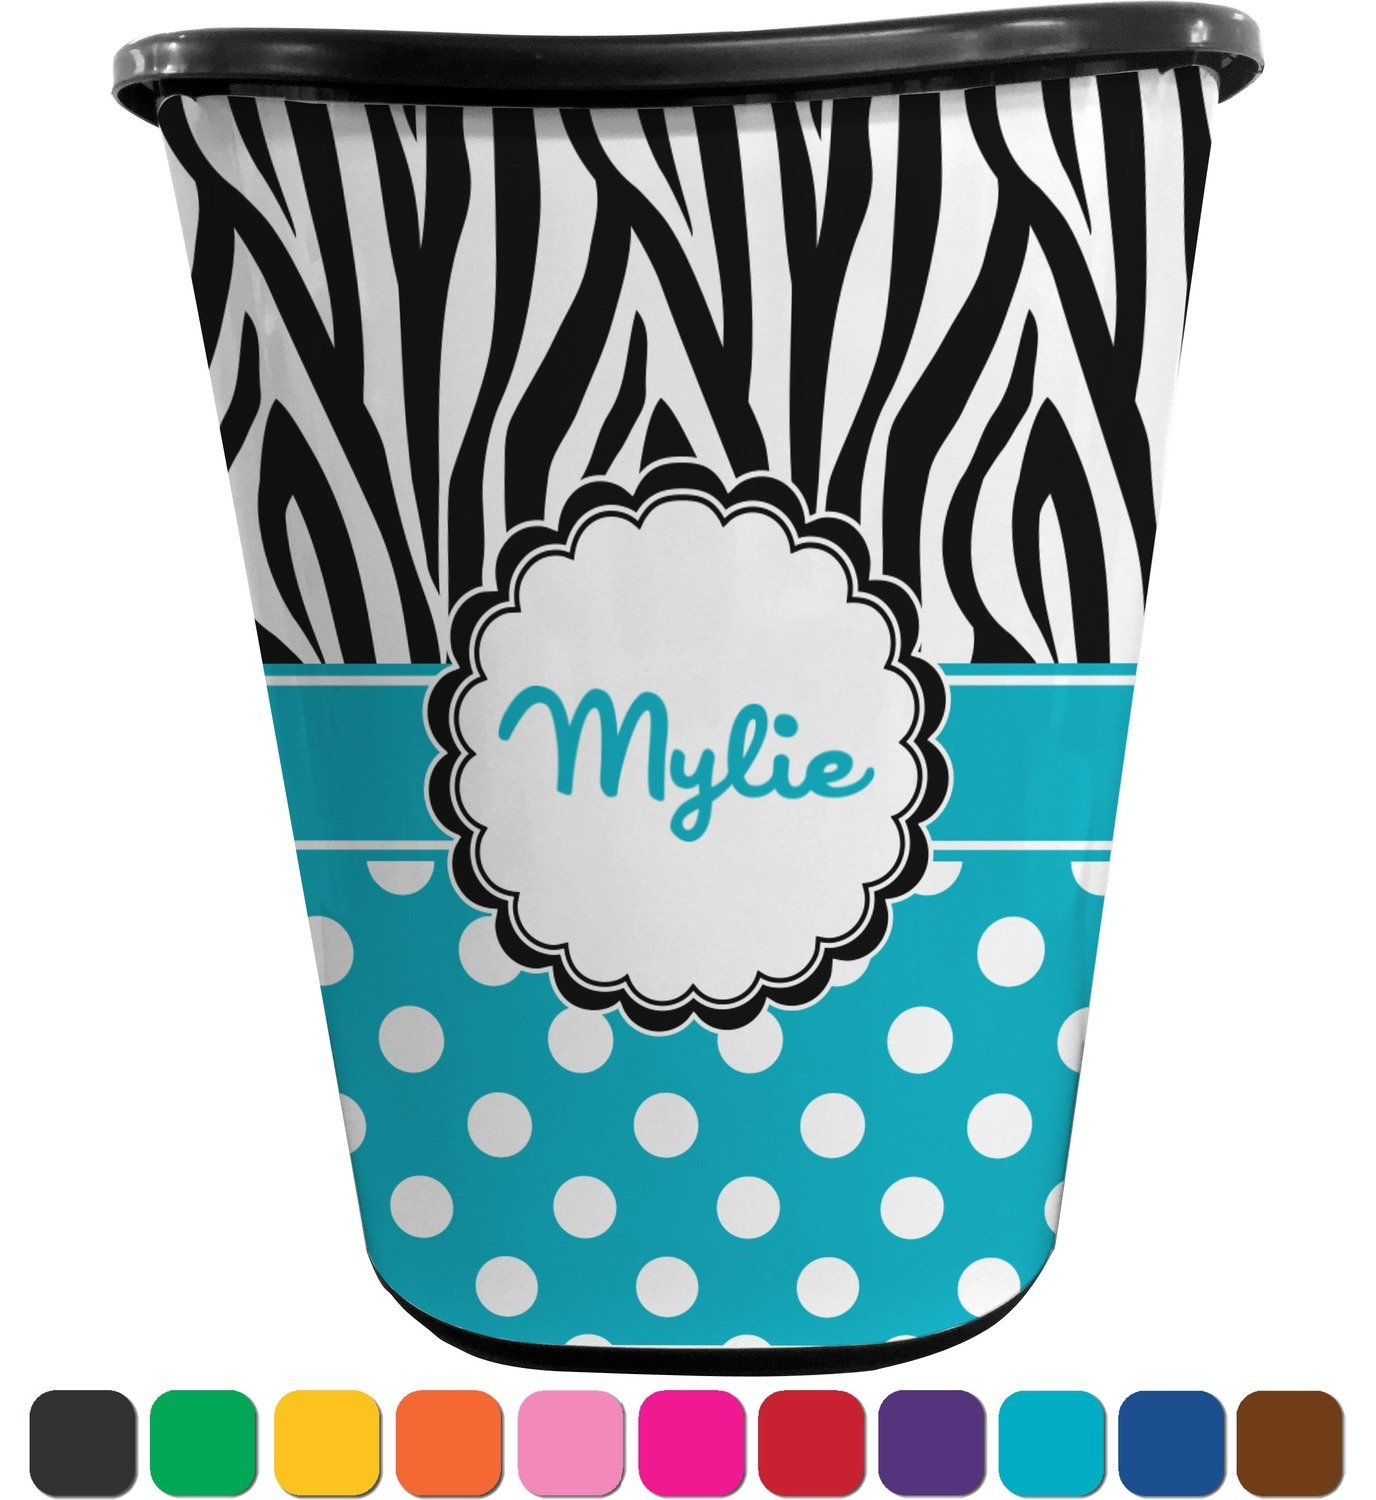 RNK Shops Dots & Zebra Waste Basket - Double Sided (Black) (Personalized)